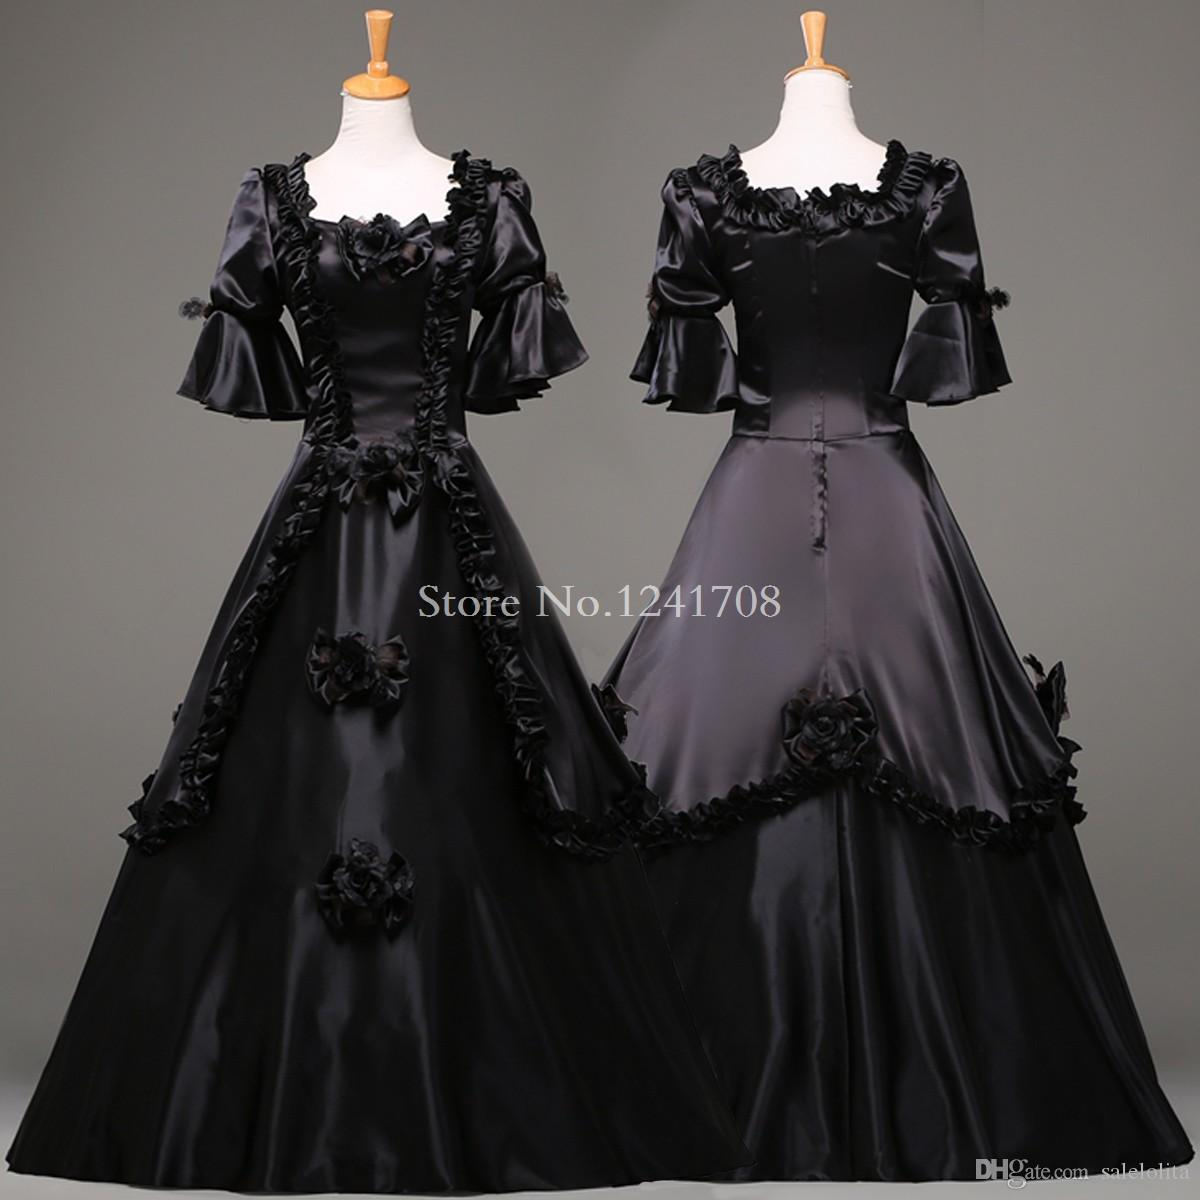 fe85332108c Custom Black Vintage Gothic Rococo Ball Gown Adult Halloween Party Dresses  For Women Baroque Colonial Masquerade Dress Costume Boys Halloween Costume  ...